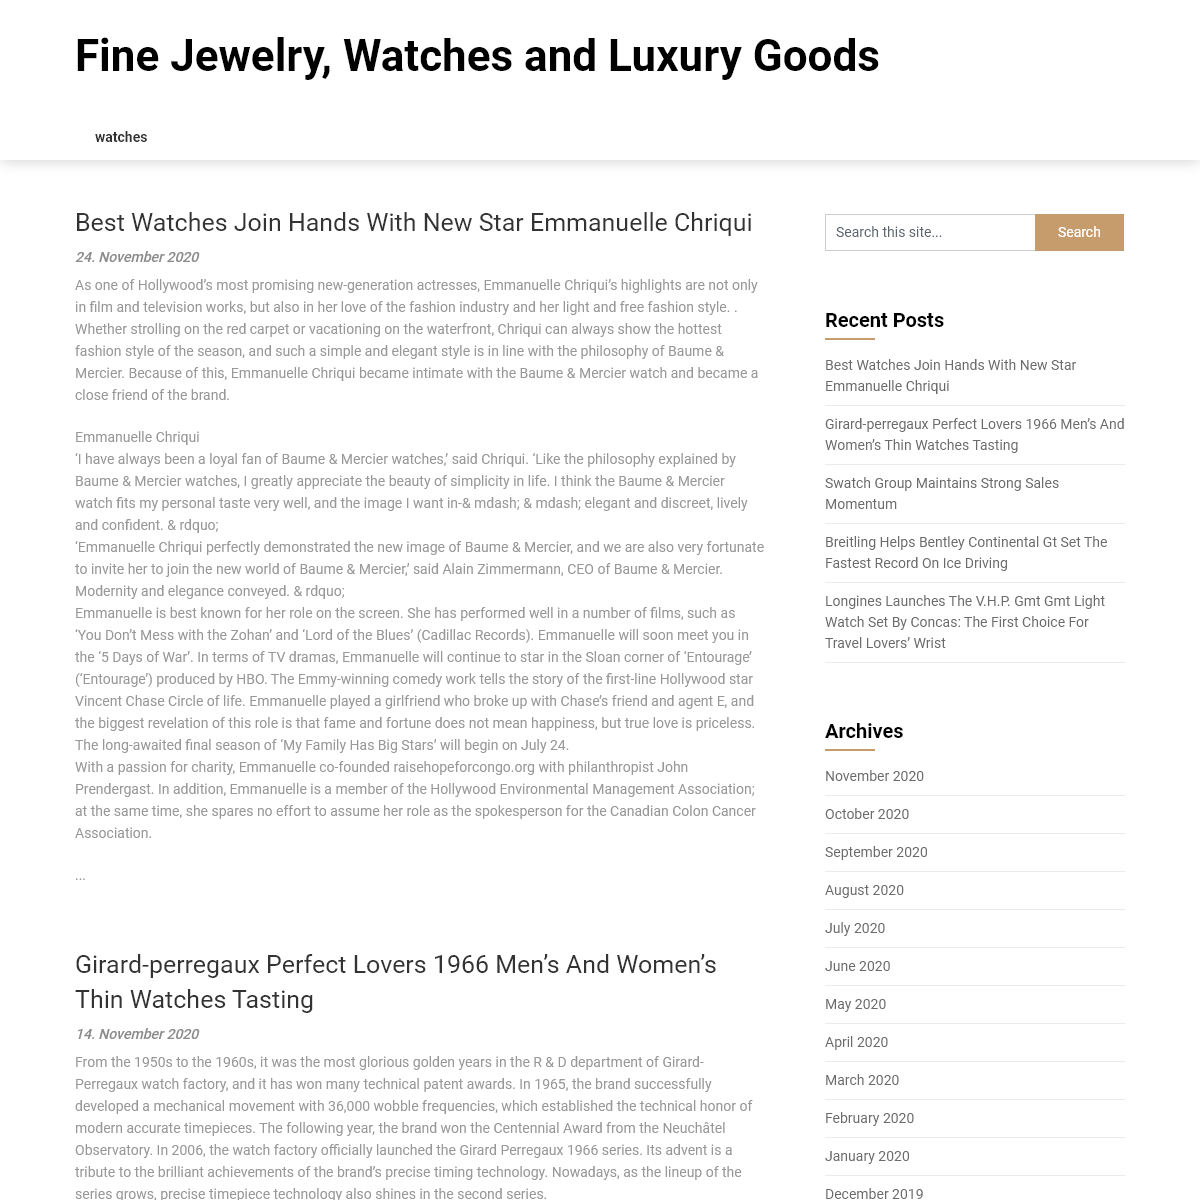 Fine Jewelry, Watches and Luxury Goods